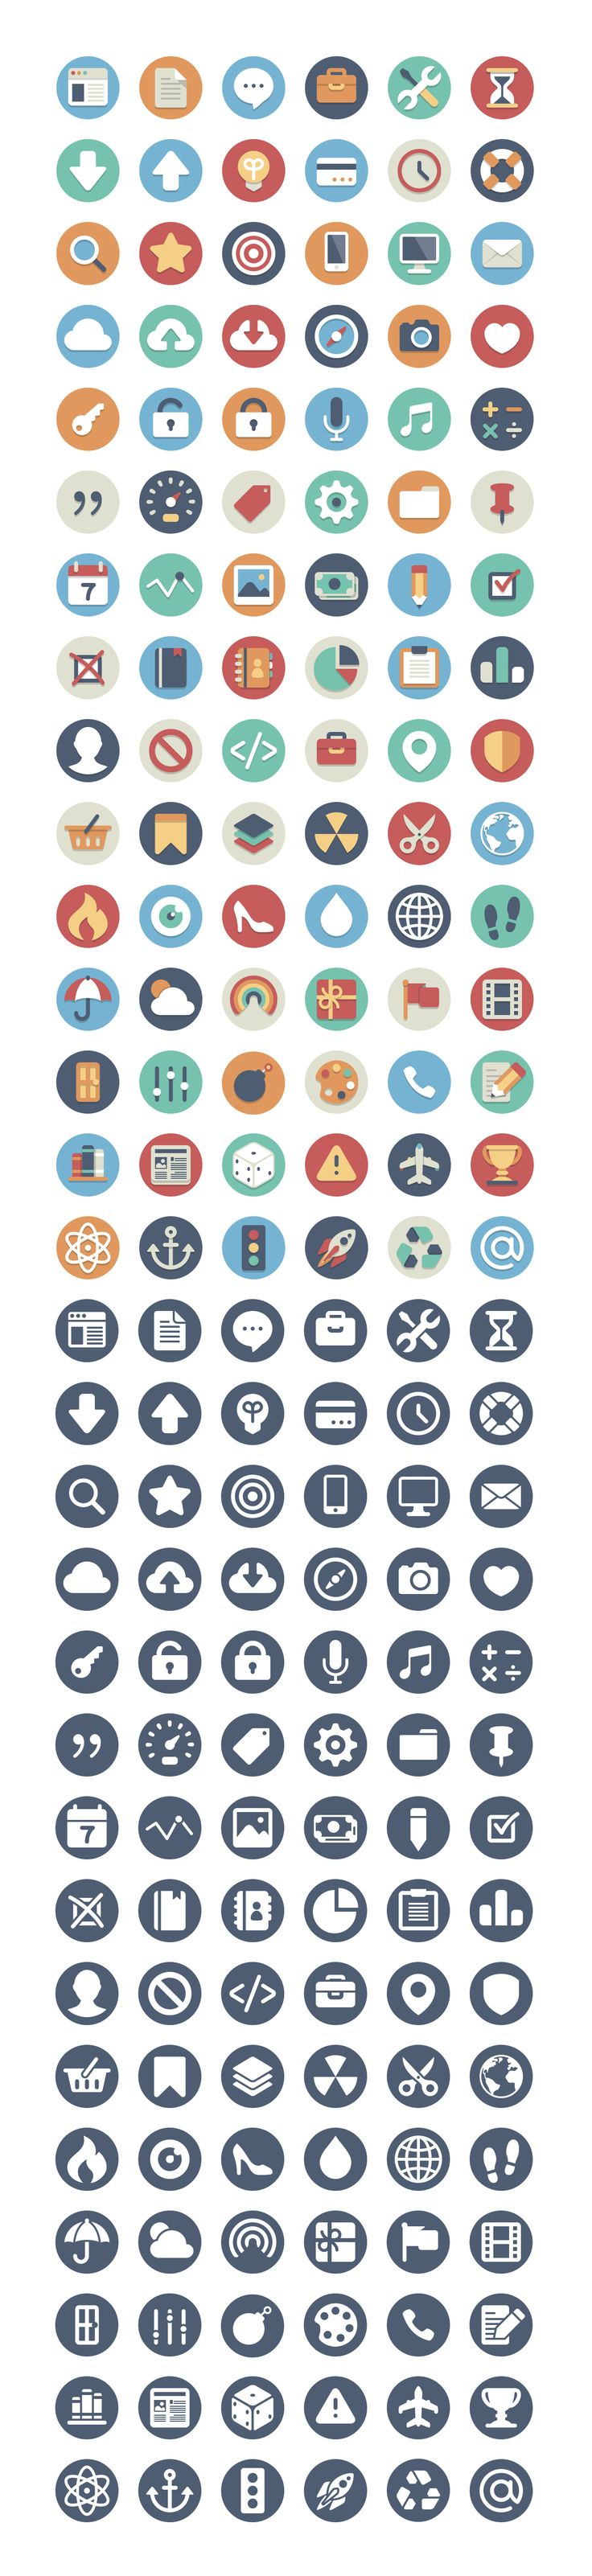 Free Circle Icons-180count by Kenny Sing